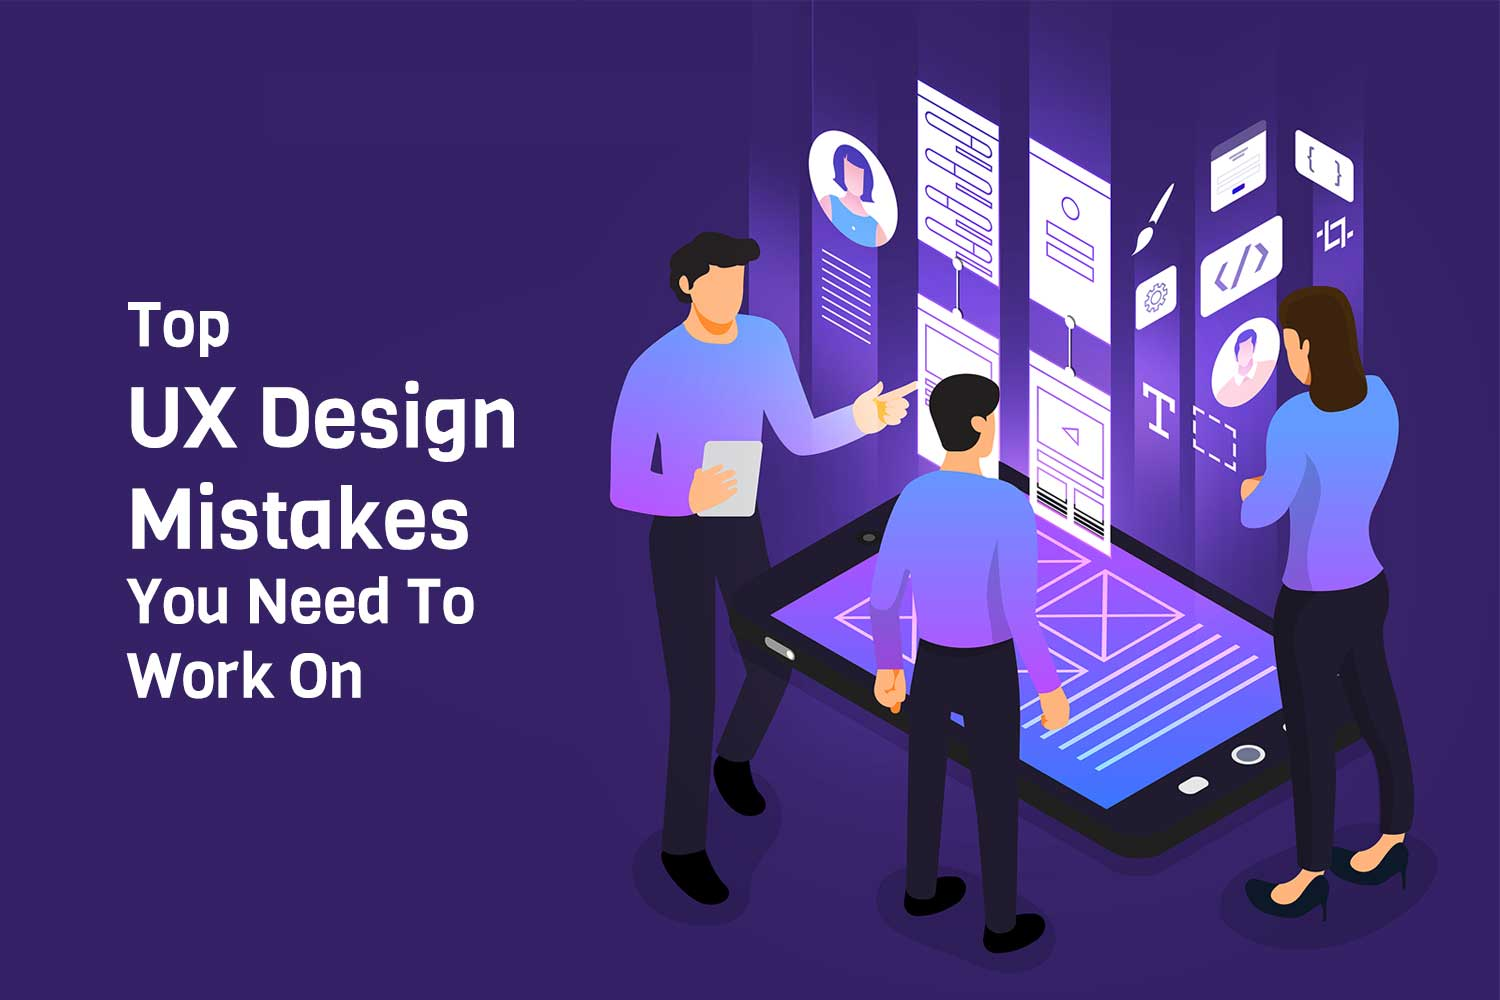 UX Design mistakes to avoid